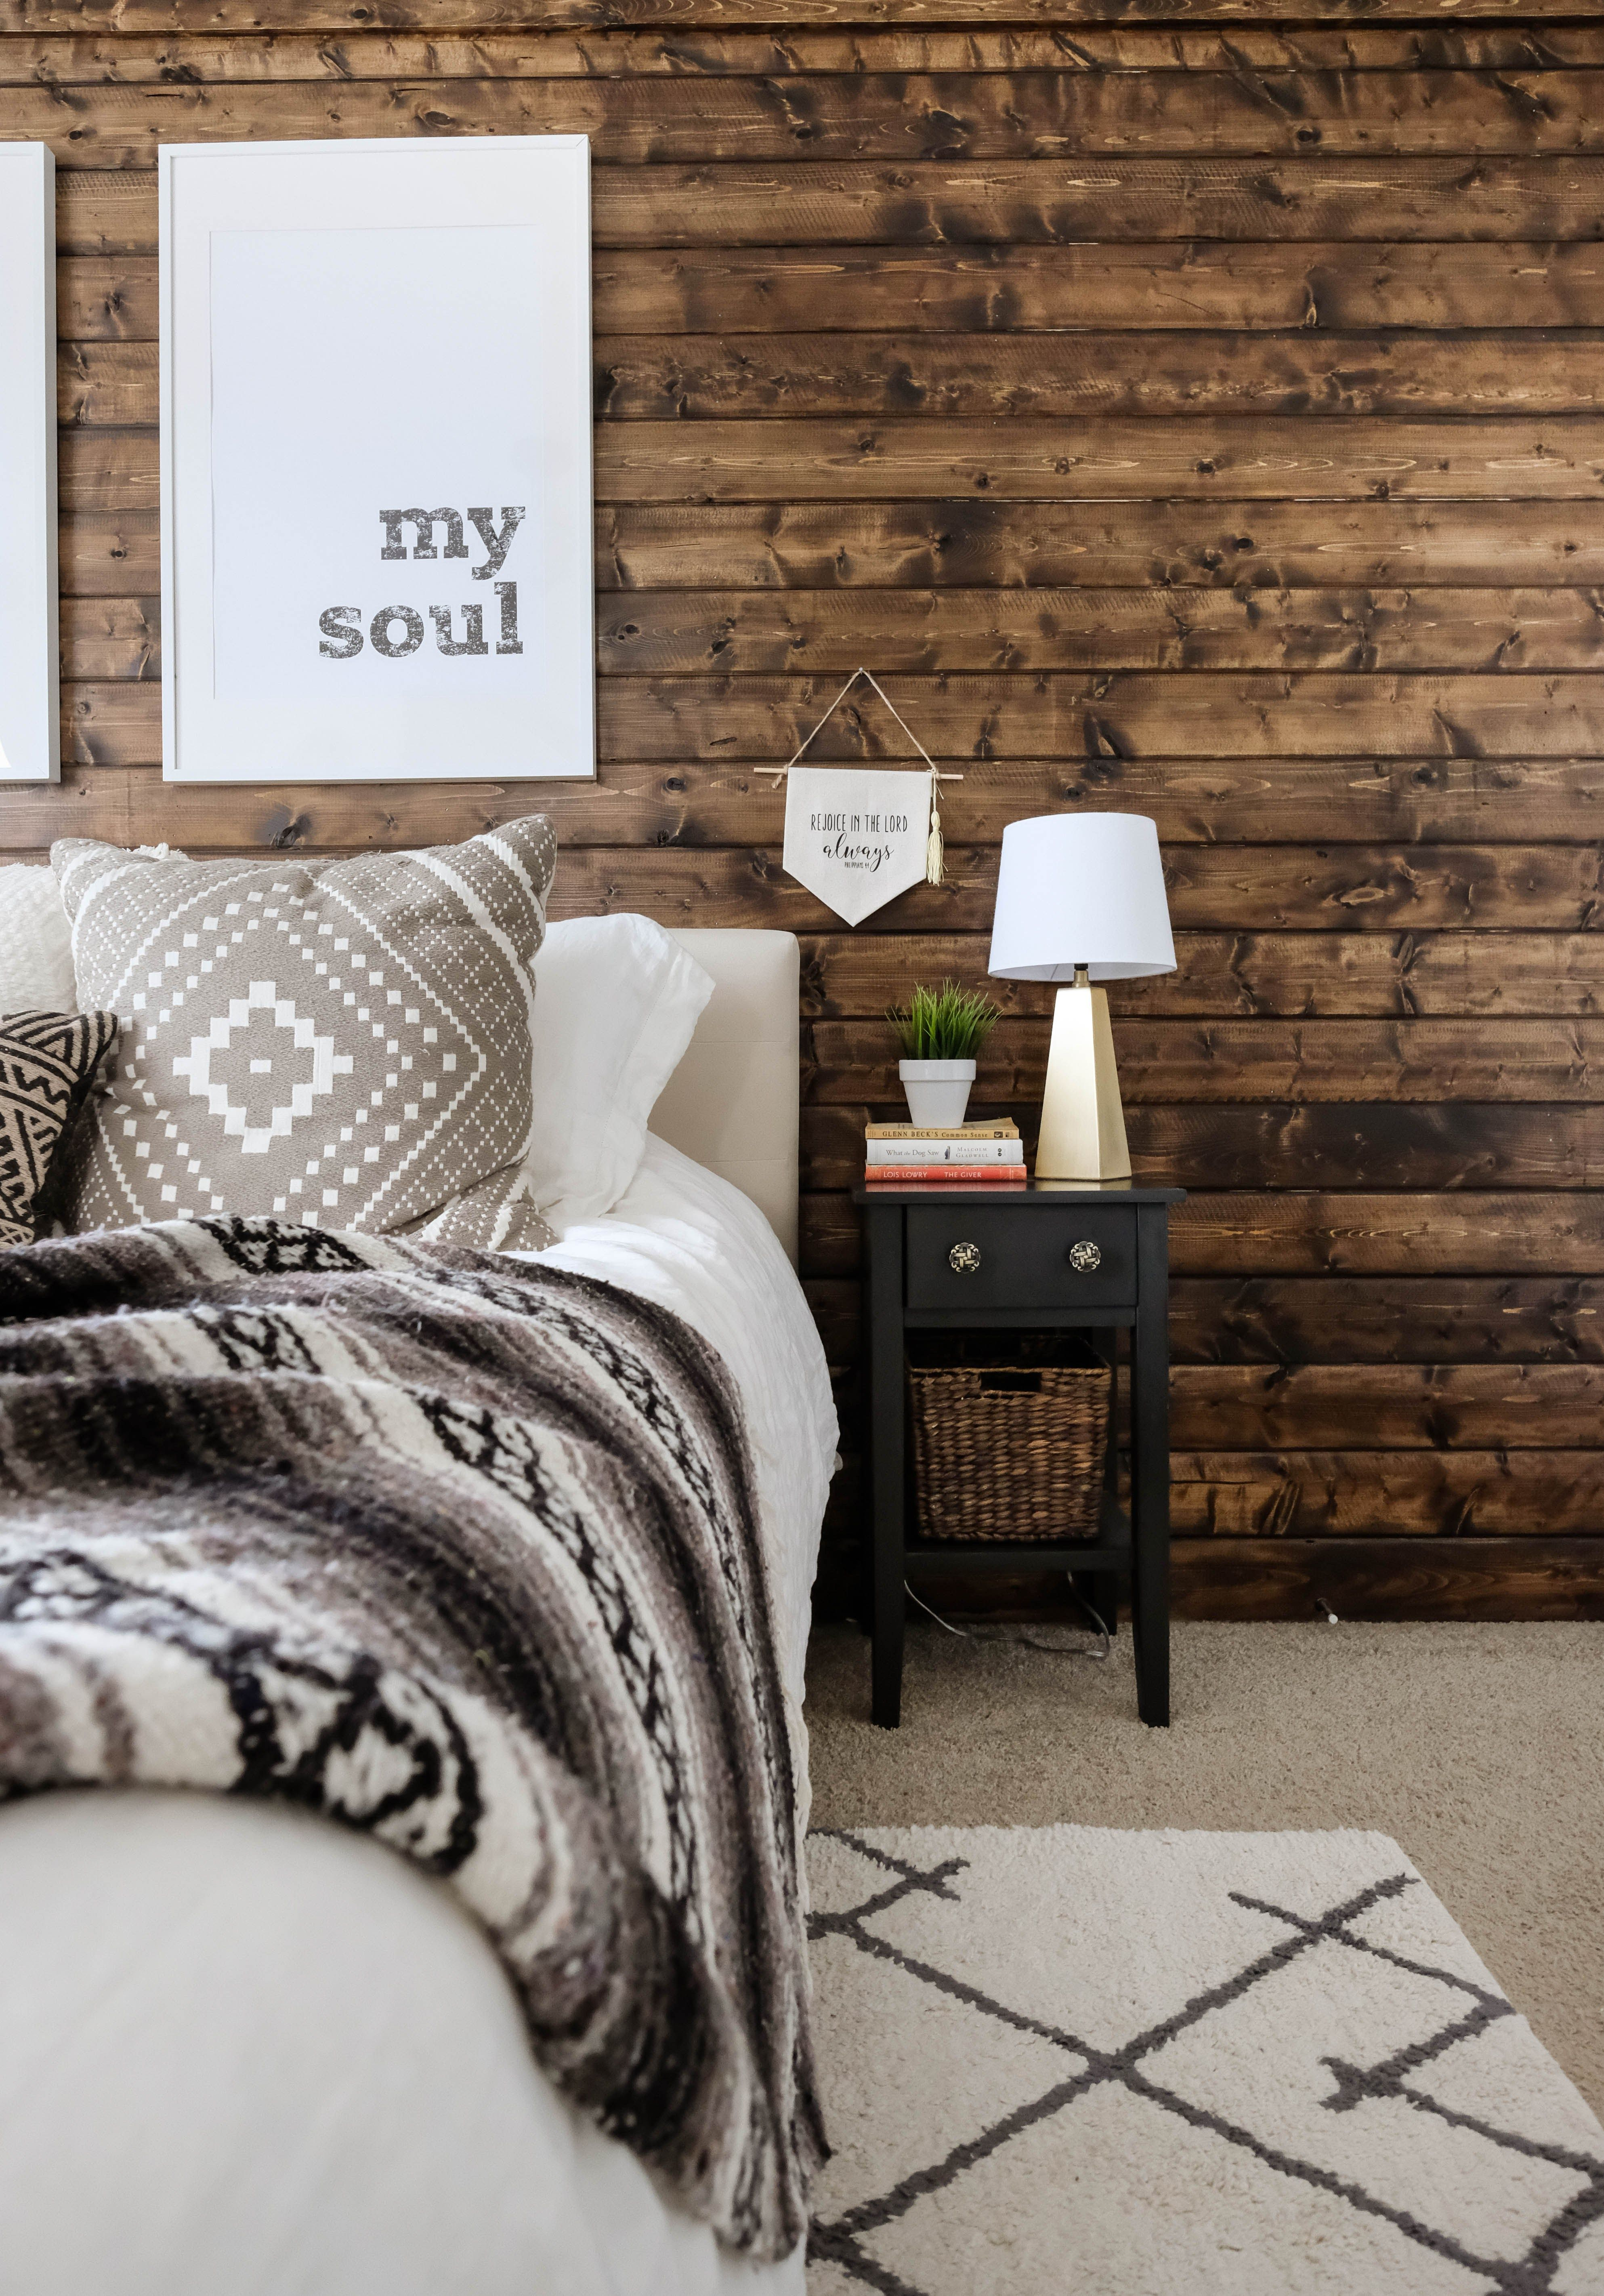 Why Your Home Needs A Wood Plank Accent Wall How To Diy One On A Budget This Tutorial Will Wood Walls Bedroom Modern Rustic Bedrooms Farmhouse Bedroom Decor